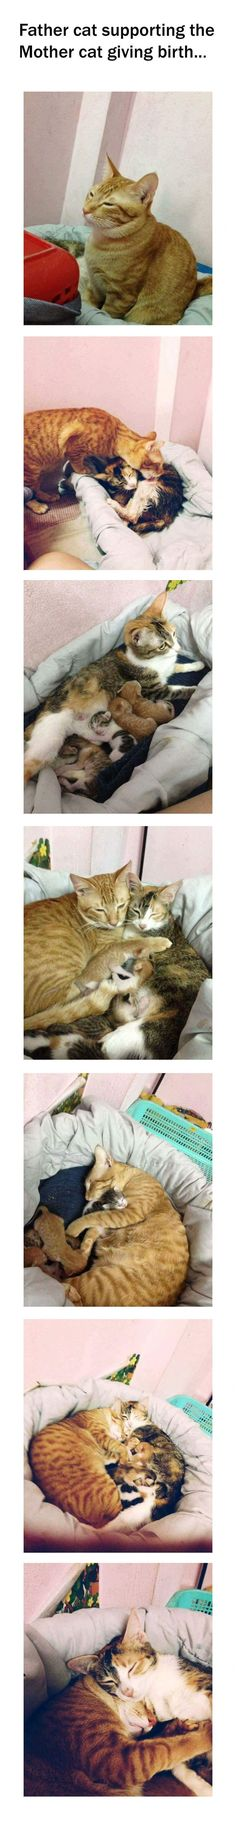 Father Cat supporting Mother Cat